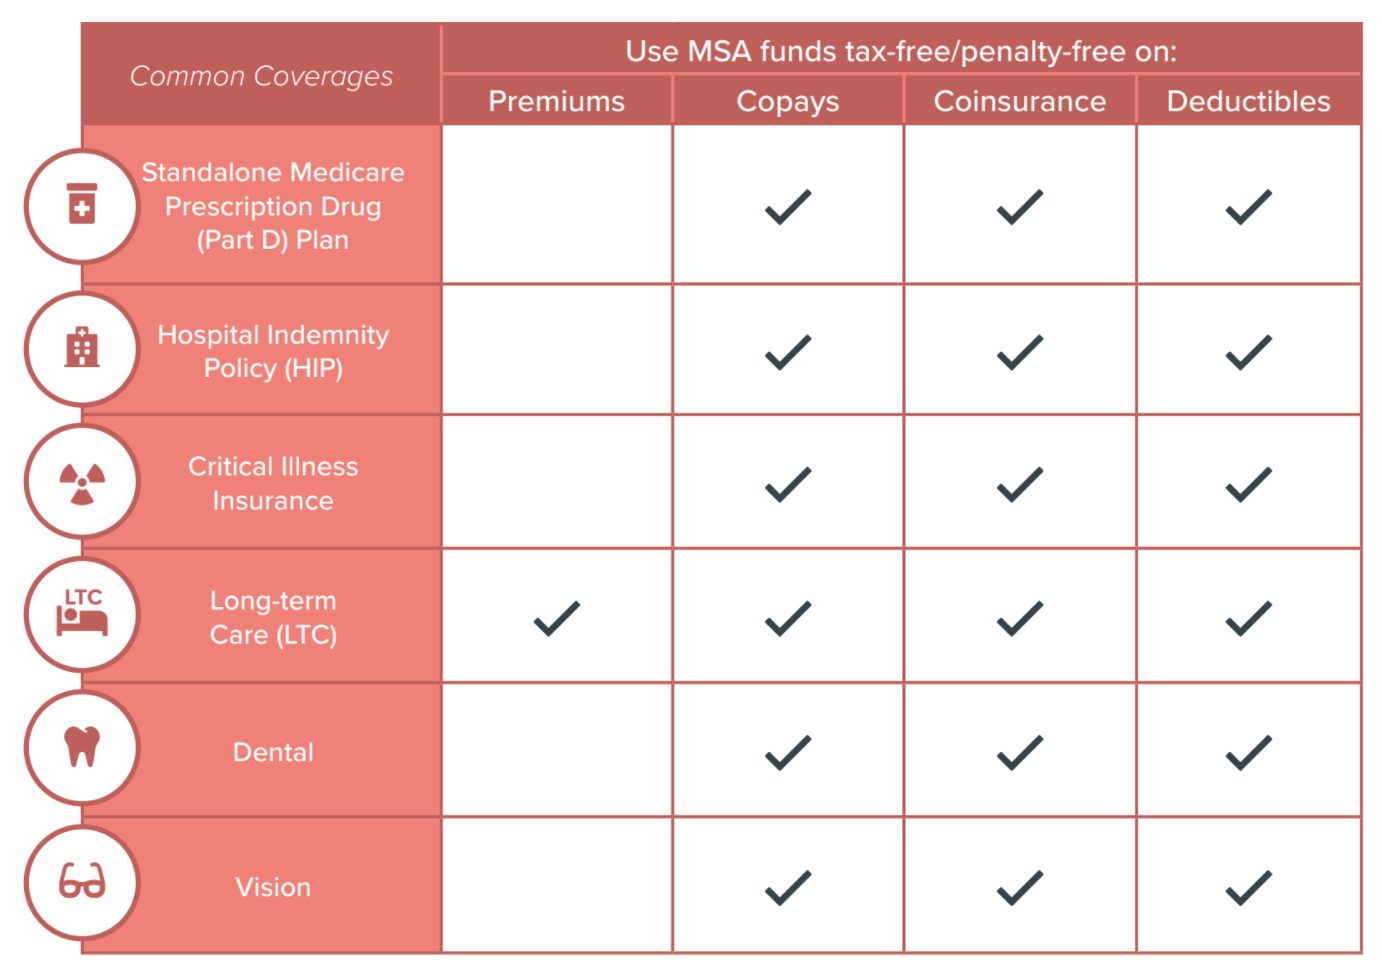 MSA funds for premiums, copays, coinsurance, and deducti